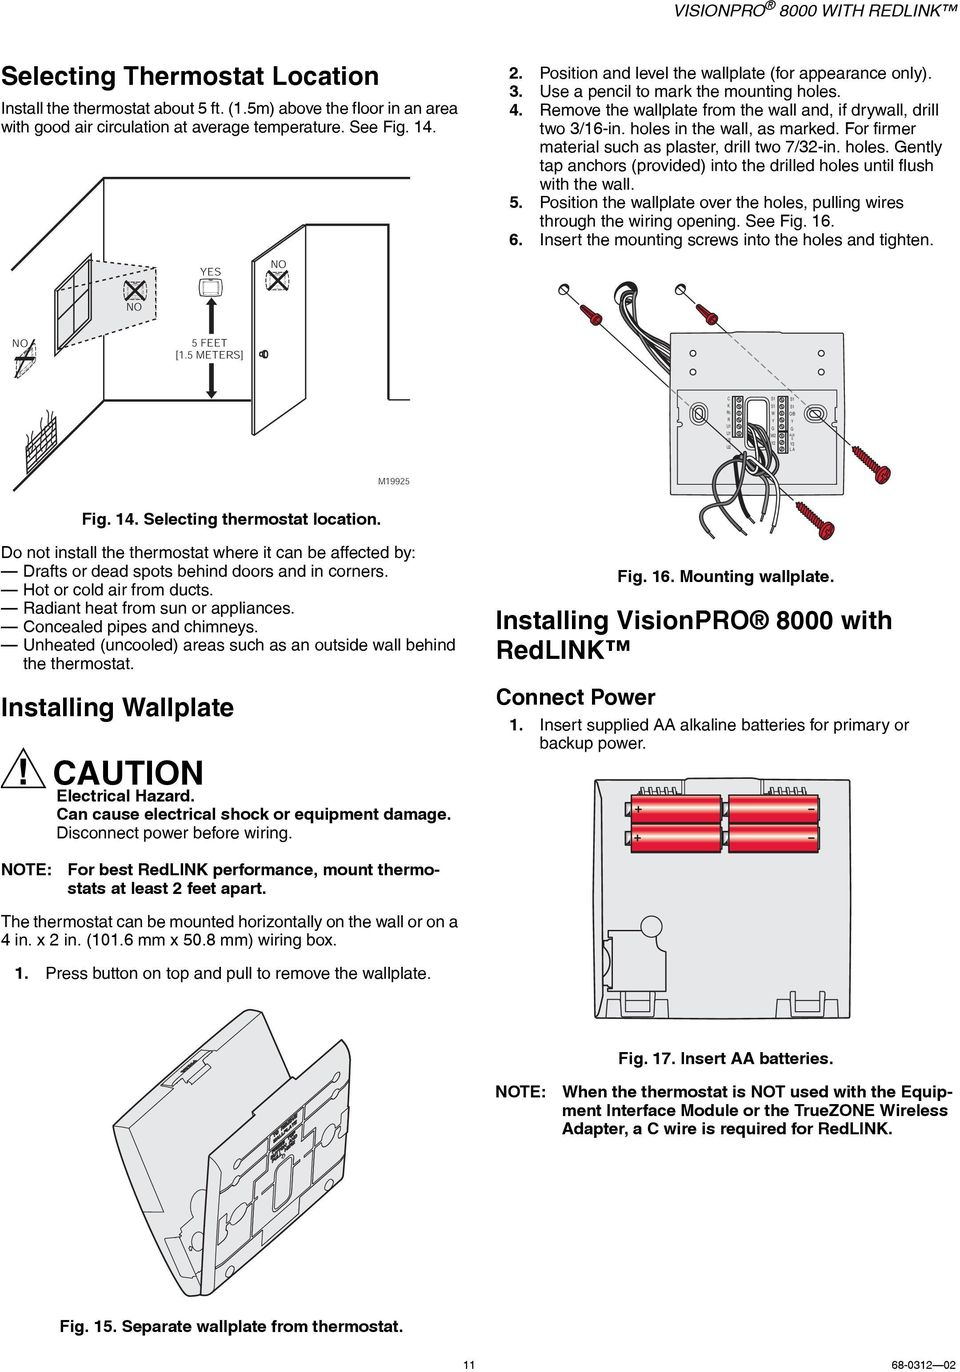 Visionpro 8000 With Redlink Pdf Dry Cell Battery Diagram On Parts Of A Alkaline Holes In The Wall As Marked For Firmer Material Such Plaster Drill